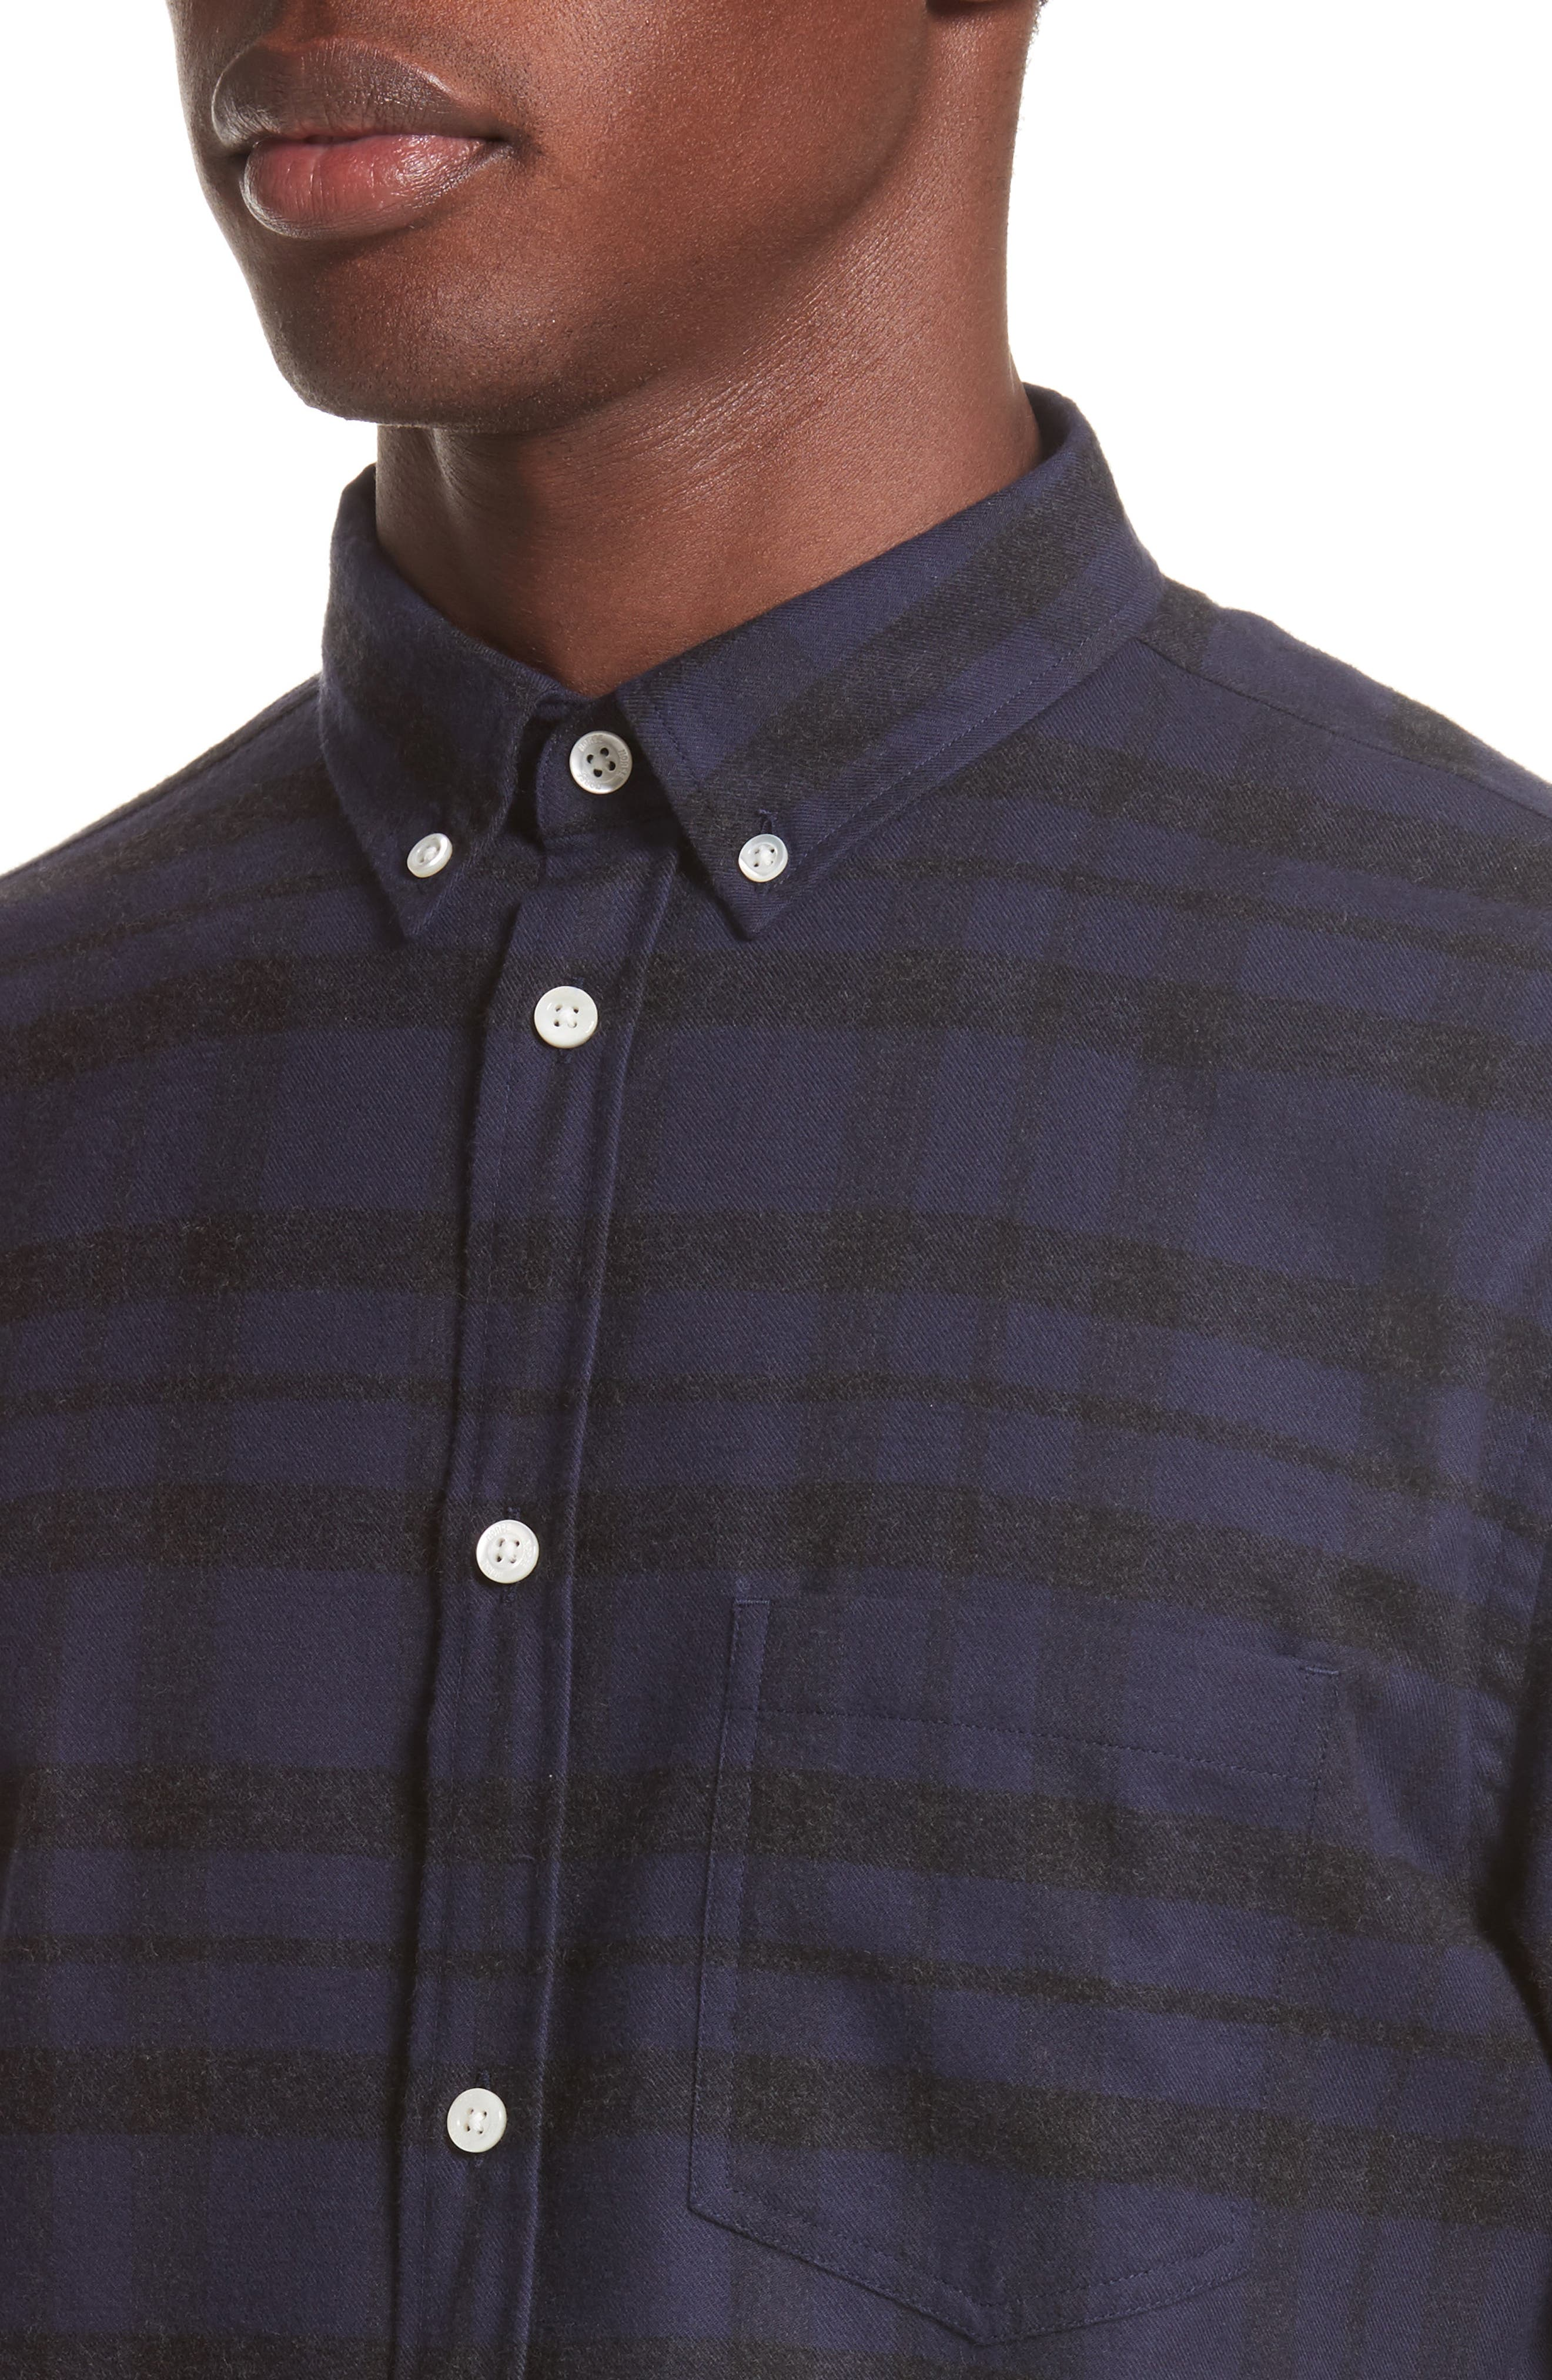 Anton Check Shirt,                             Alternate thumbnail 5, color,                             010